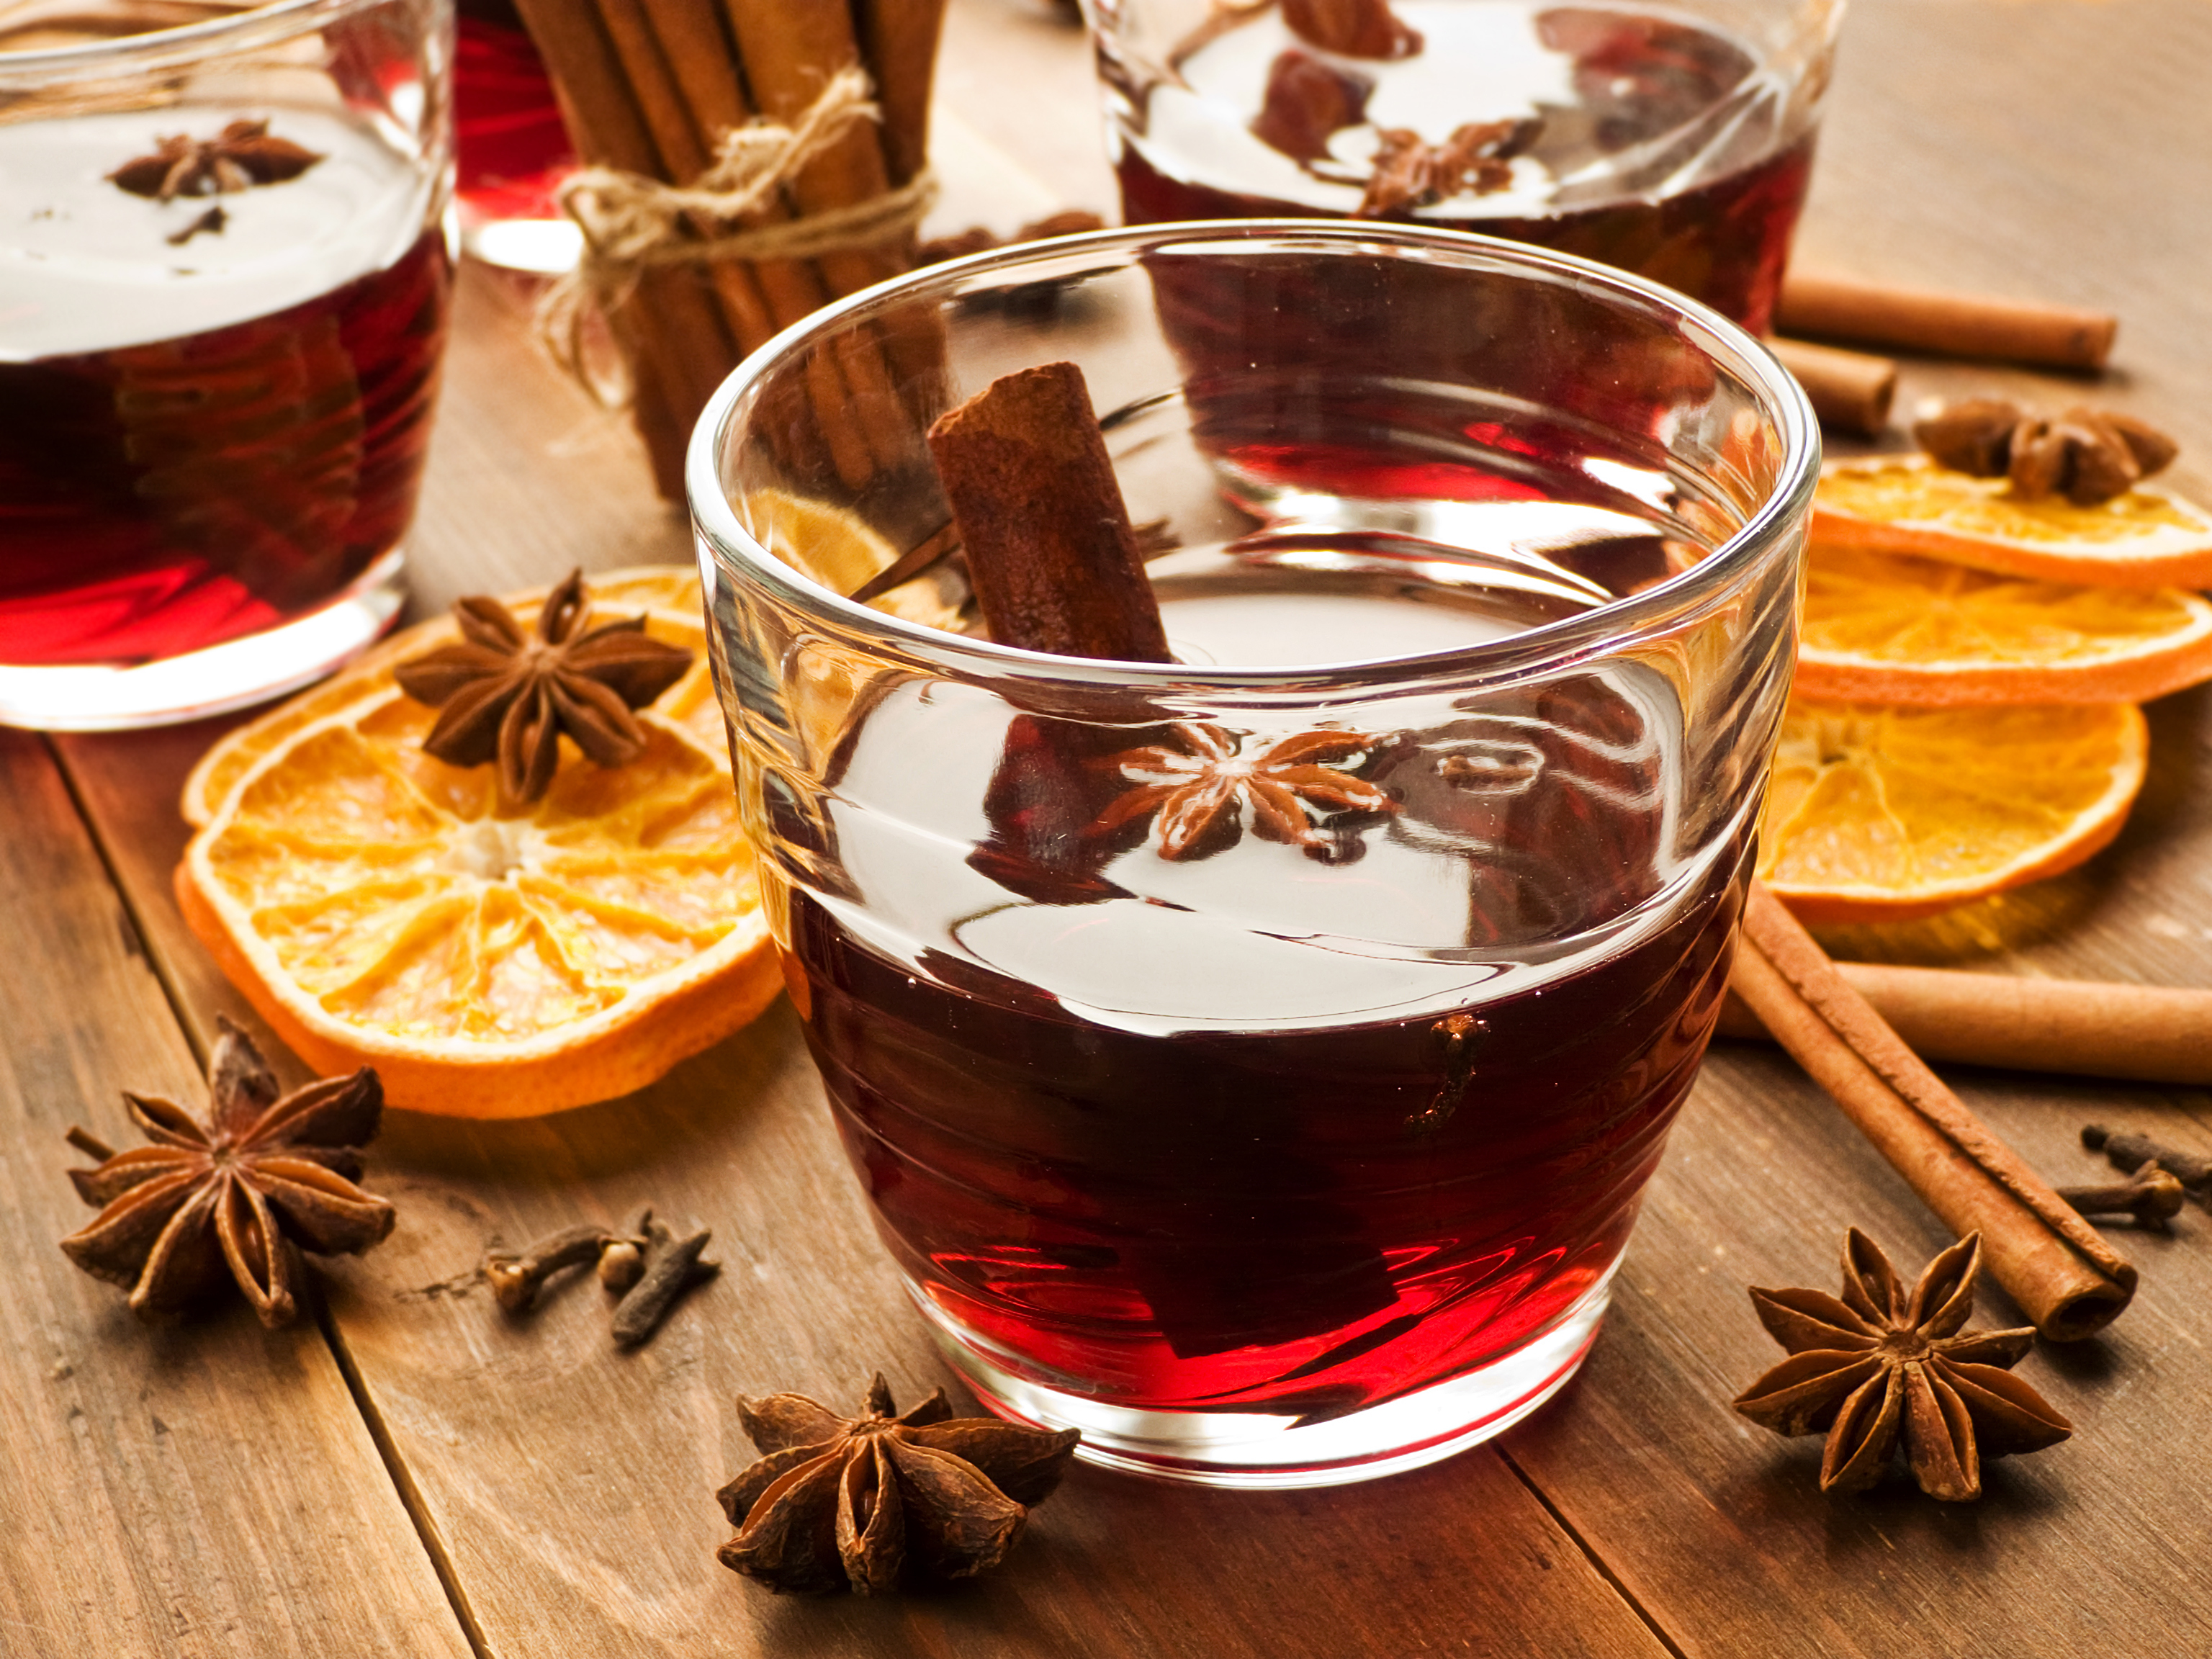 Olly's Mulled Wines - Olly Smith